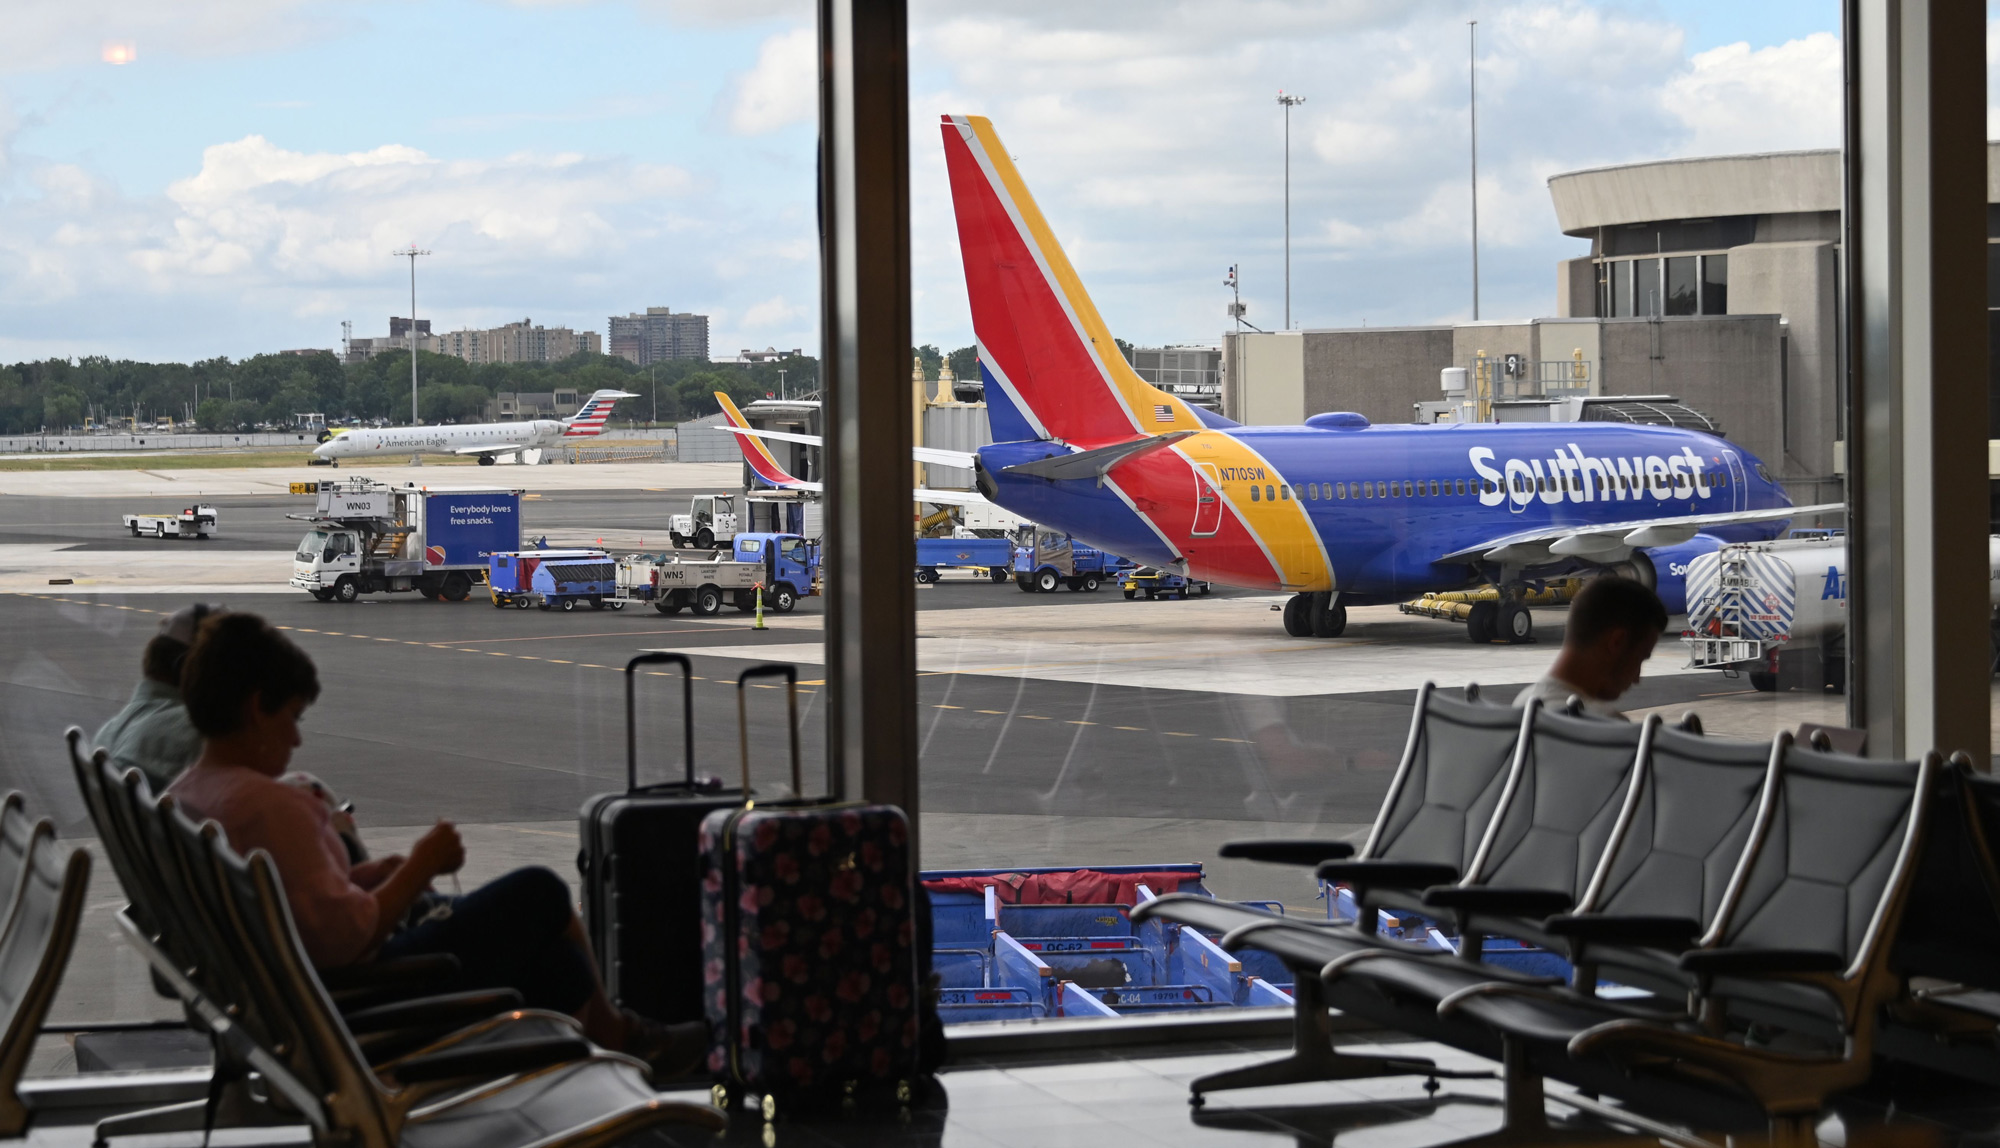 Passengers wait at the Southwest Airlines counter at Ronald Reagan Washington National Airport on July 10 in Arlington, Virginia.